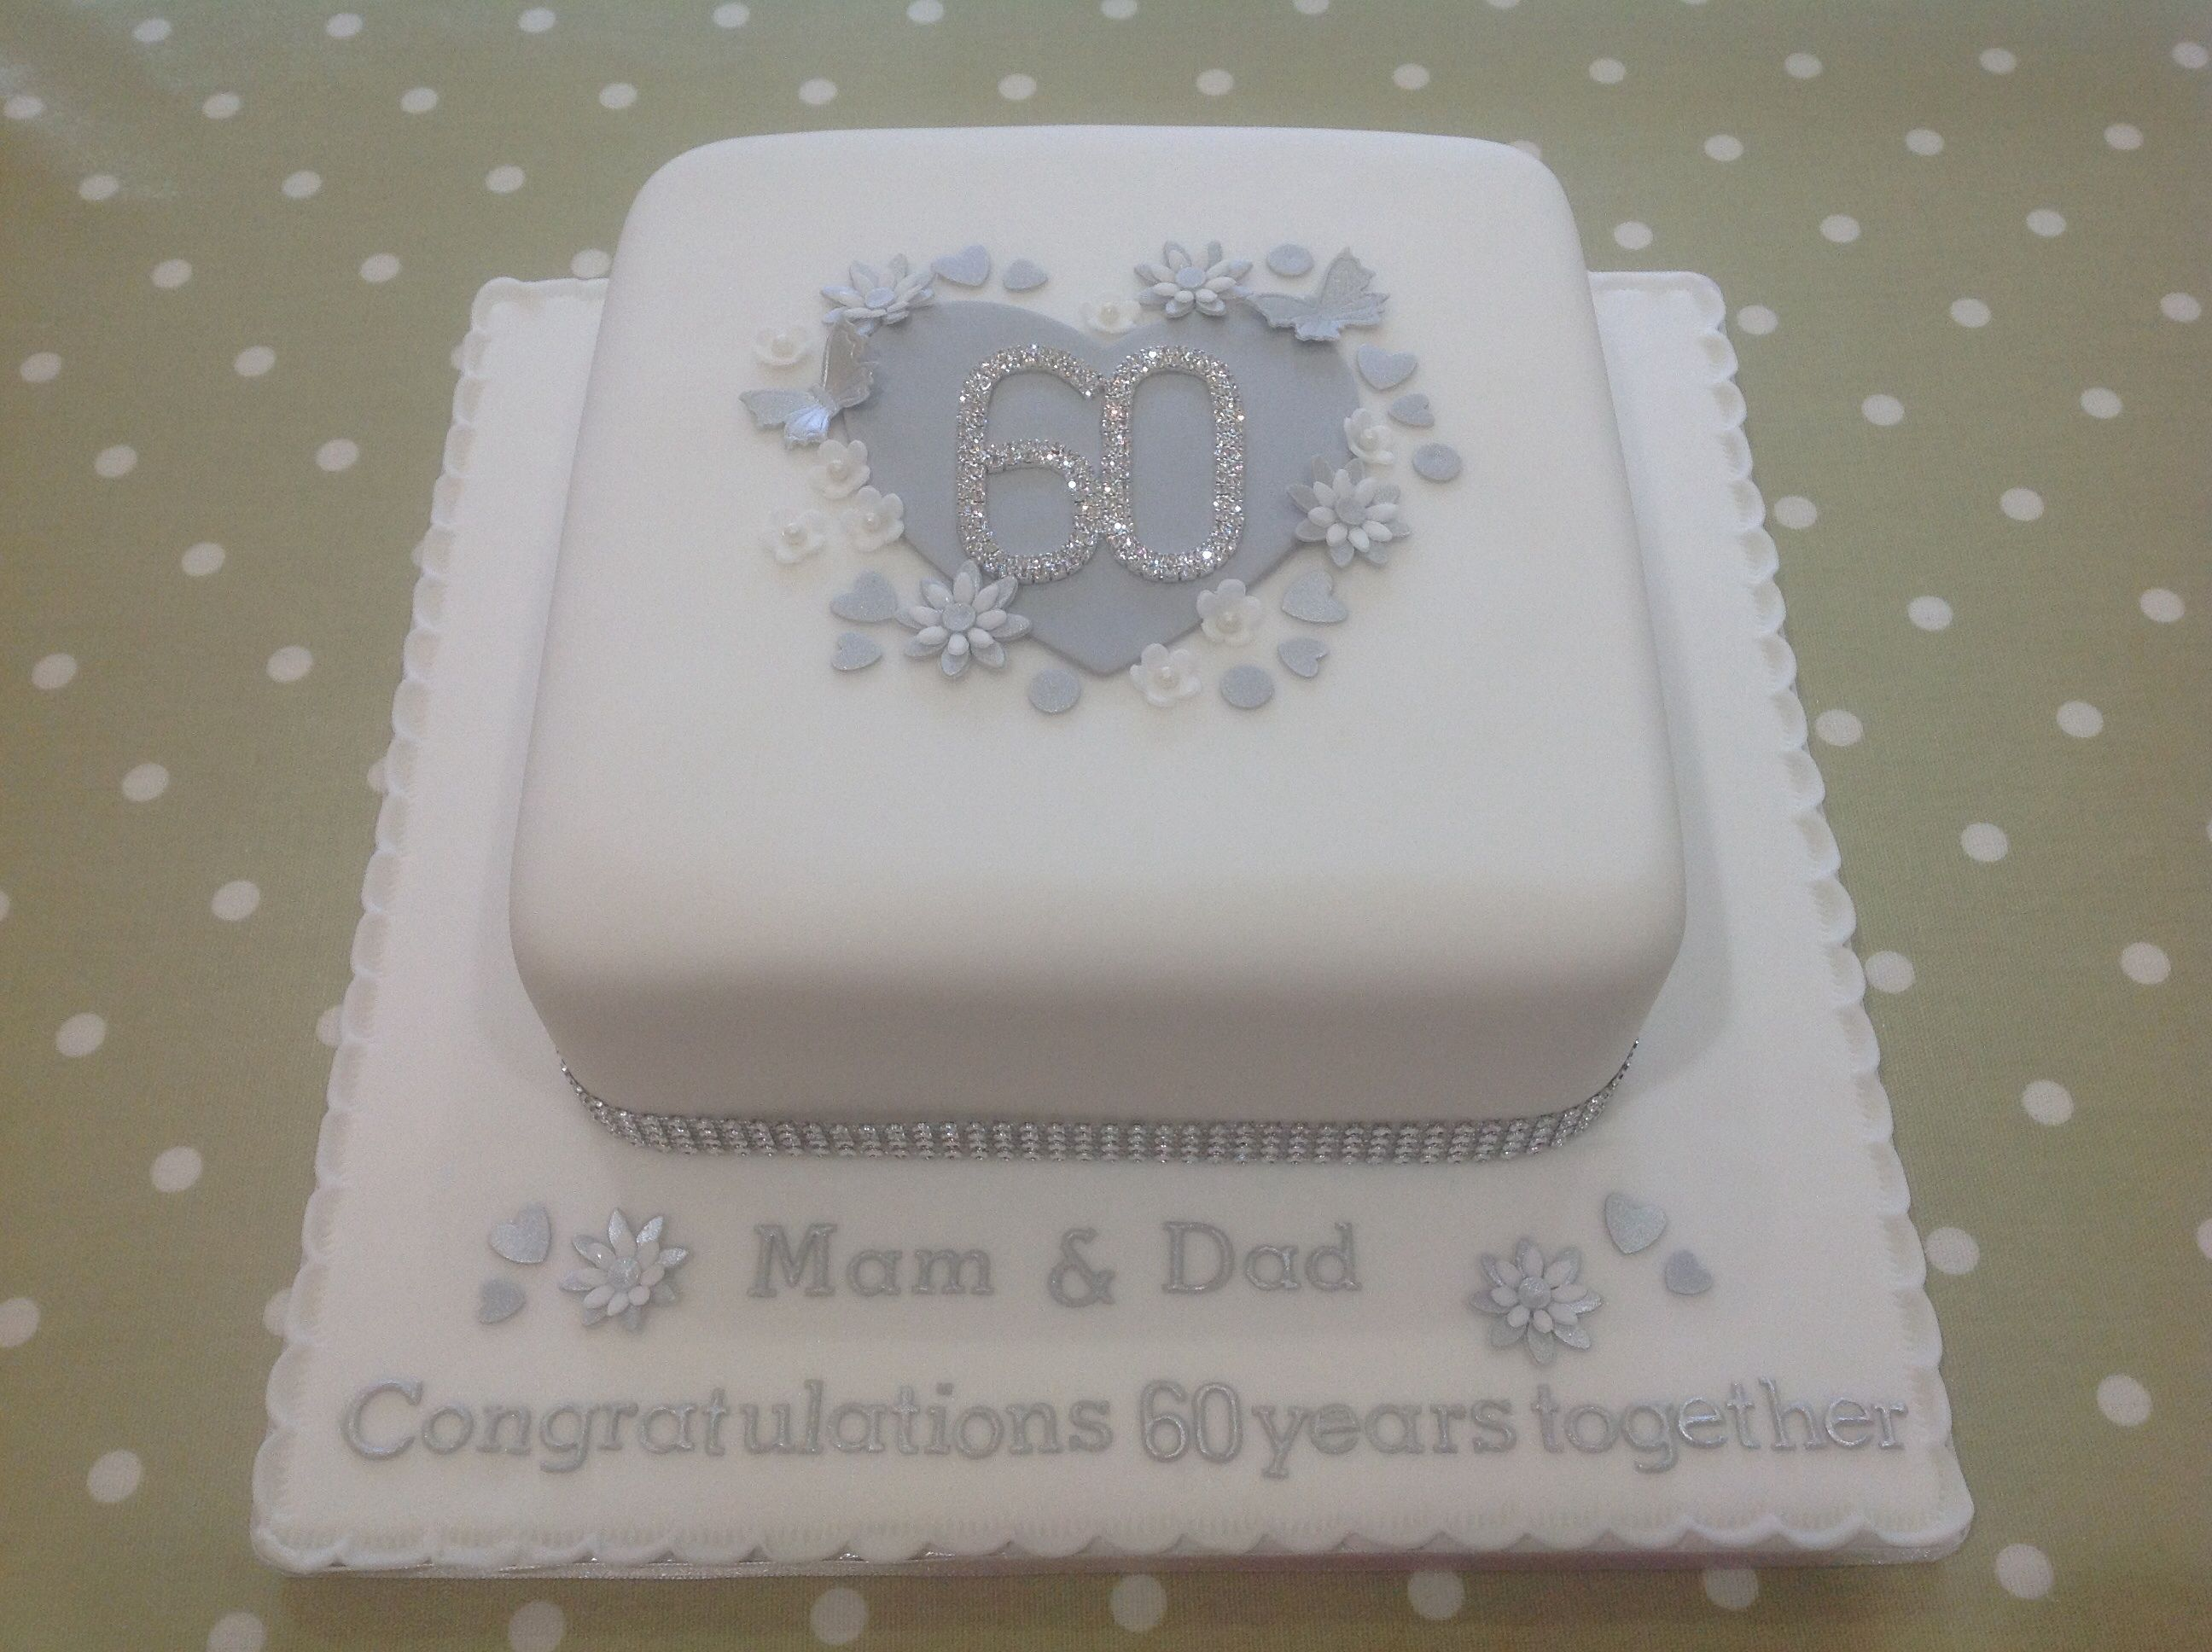 Cake Decorating Wedding Anniversary : diamond wedding anniversary cakes - Google Search bolos ...